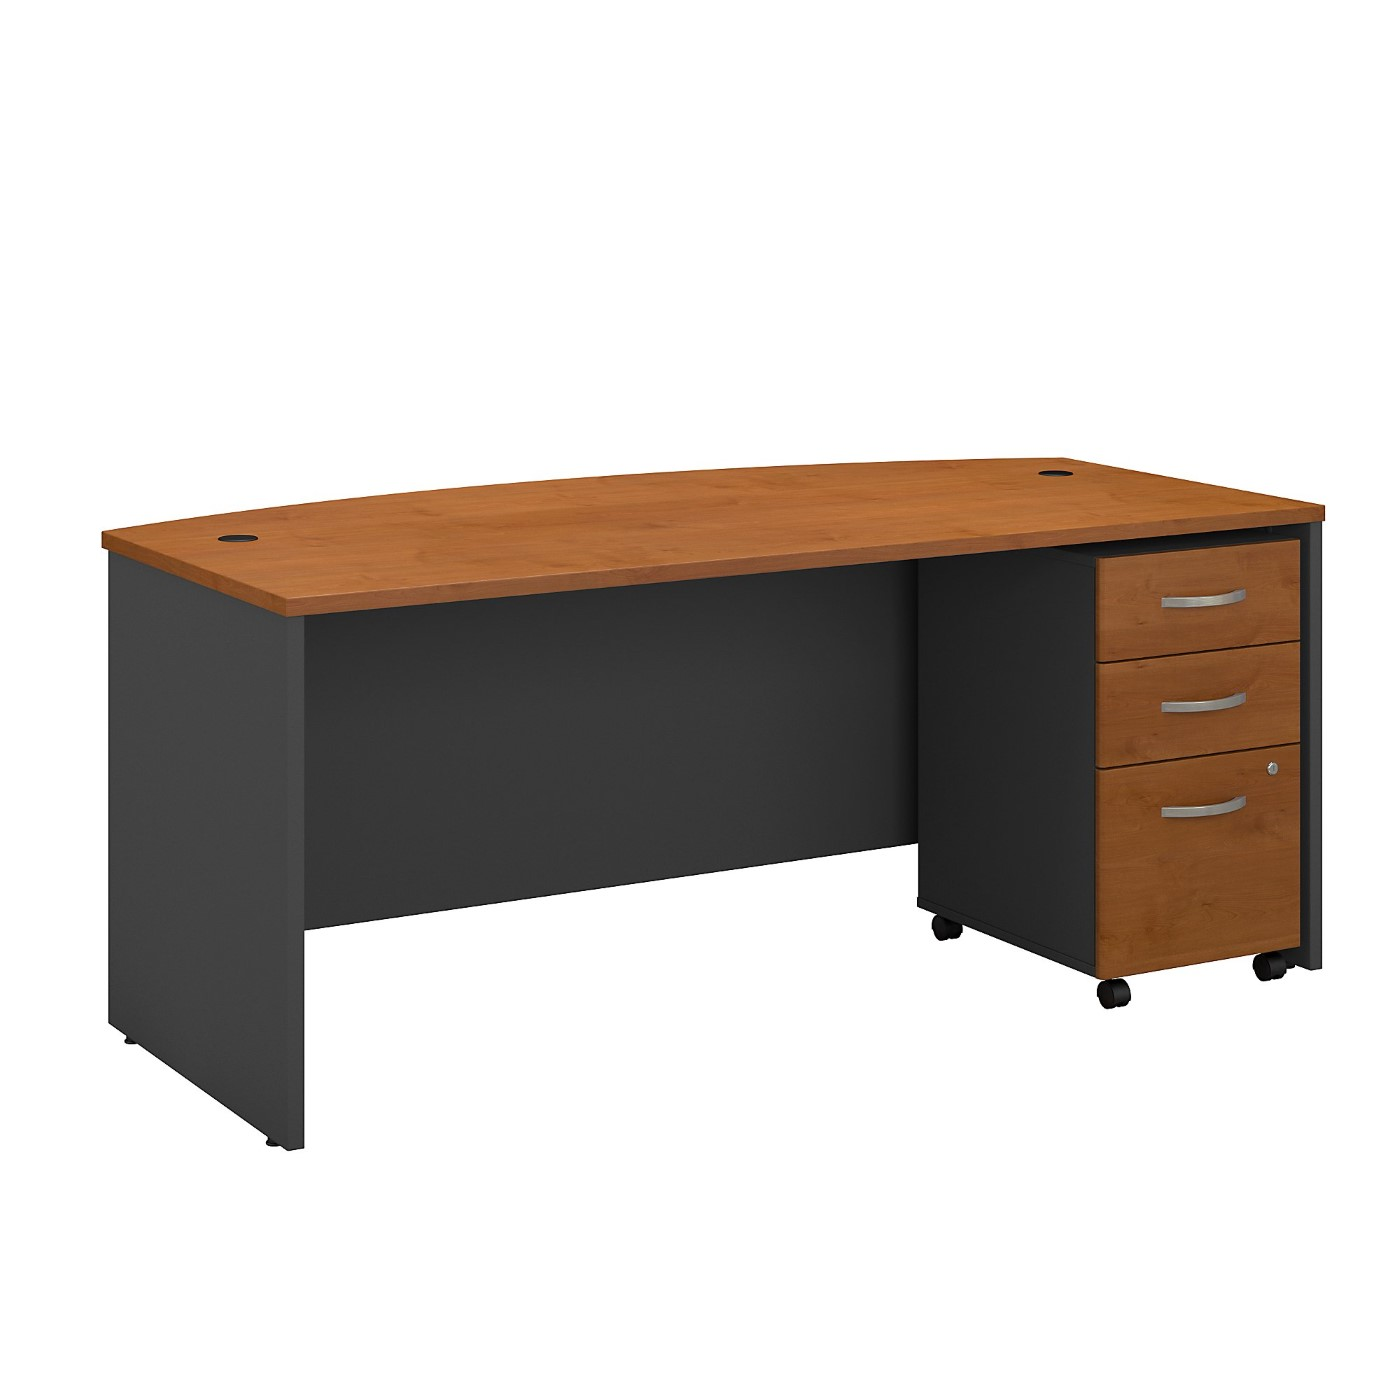 BUSH BUSINESS FURNITURE SERIES C 72W X 36D BOW FRONT DESK WITH MOBILE FILE CABINET. FREE SHIPPING